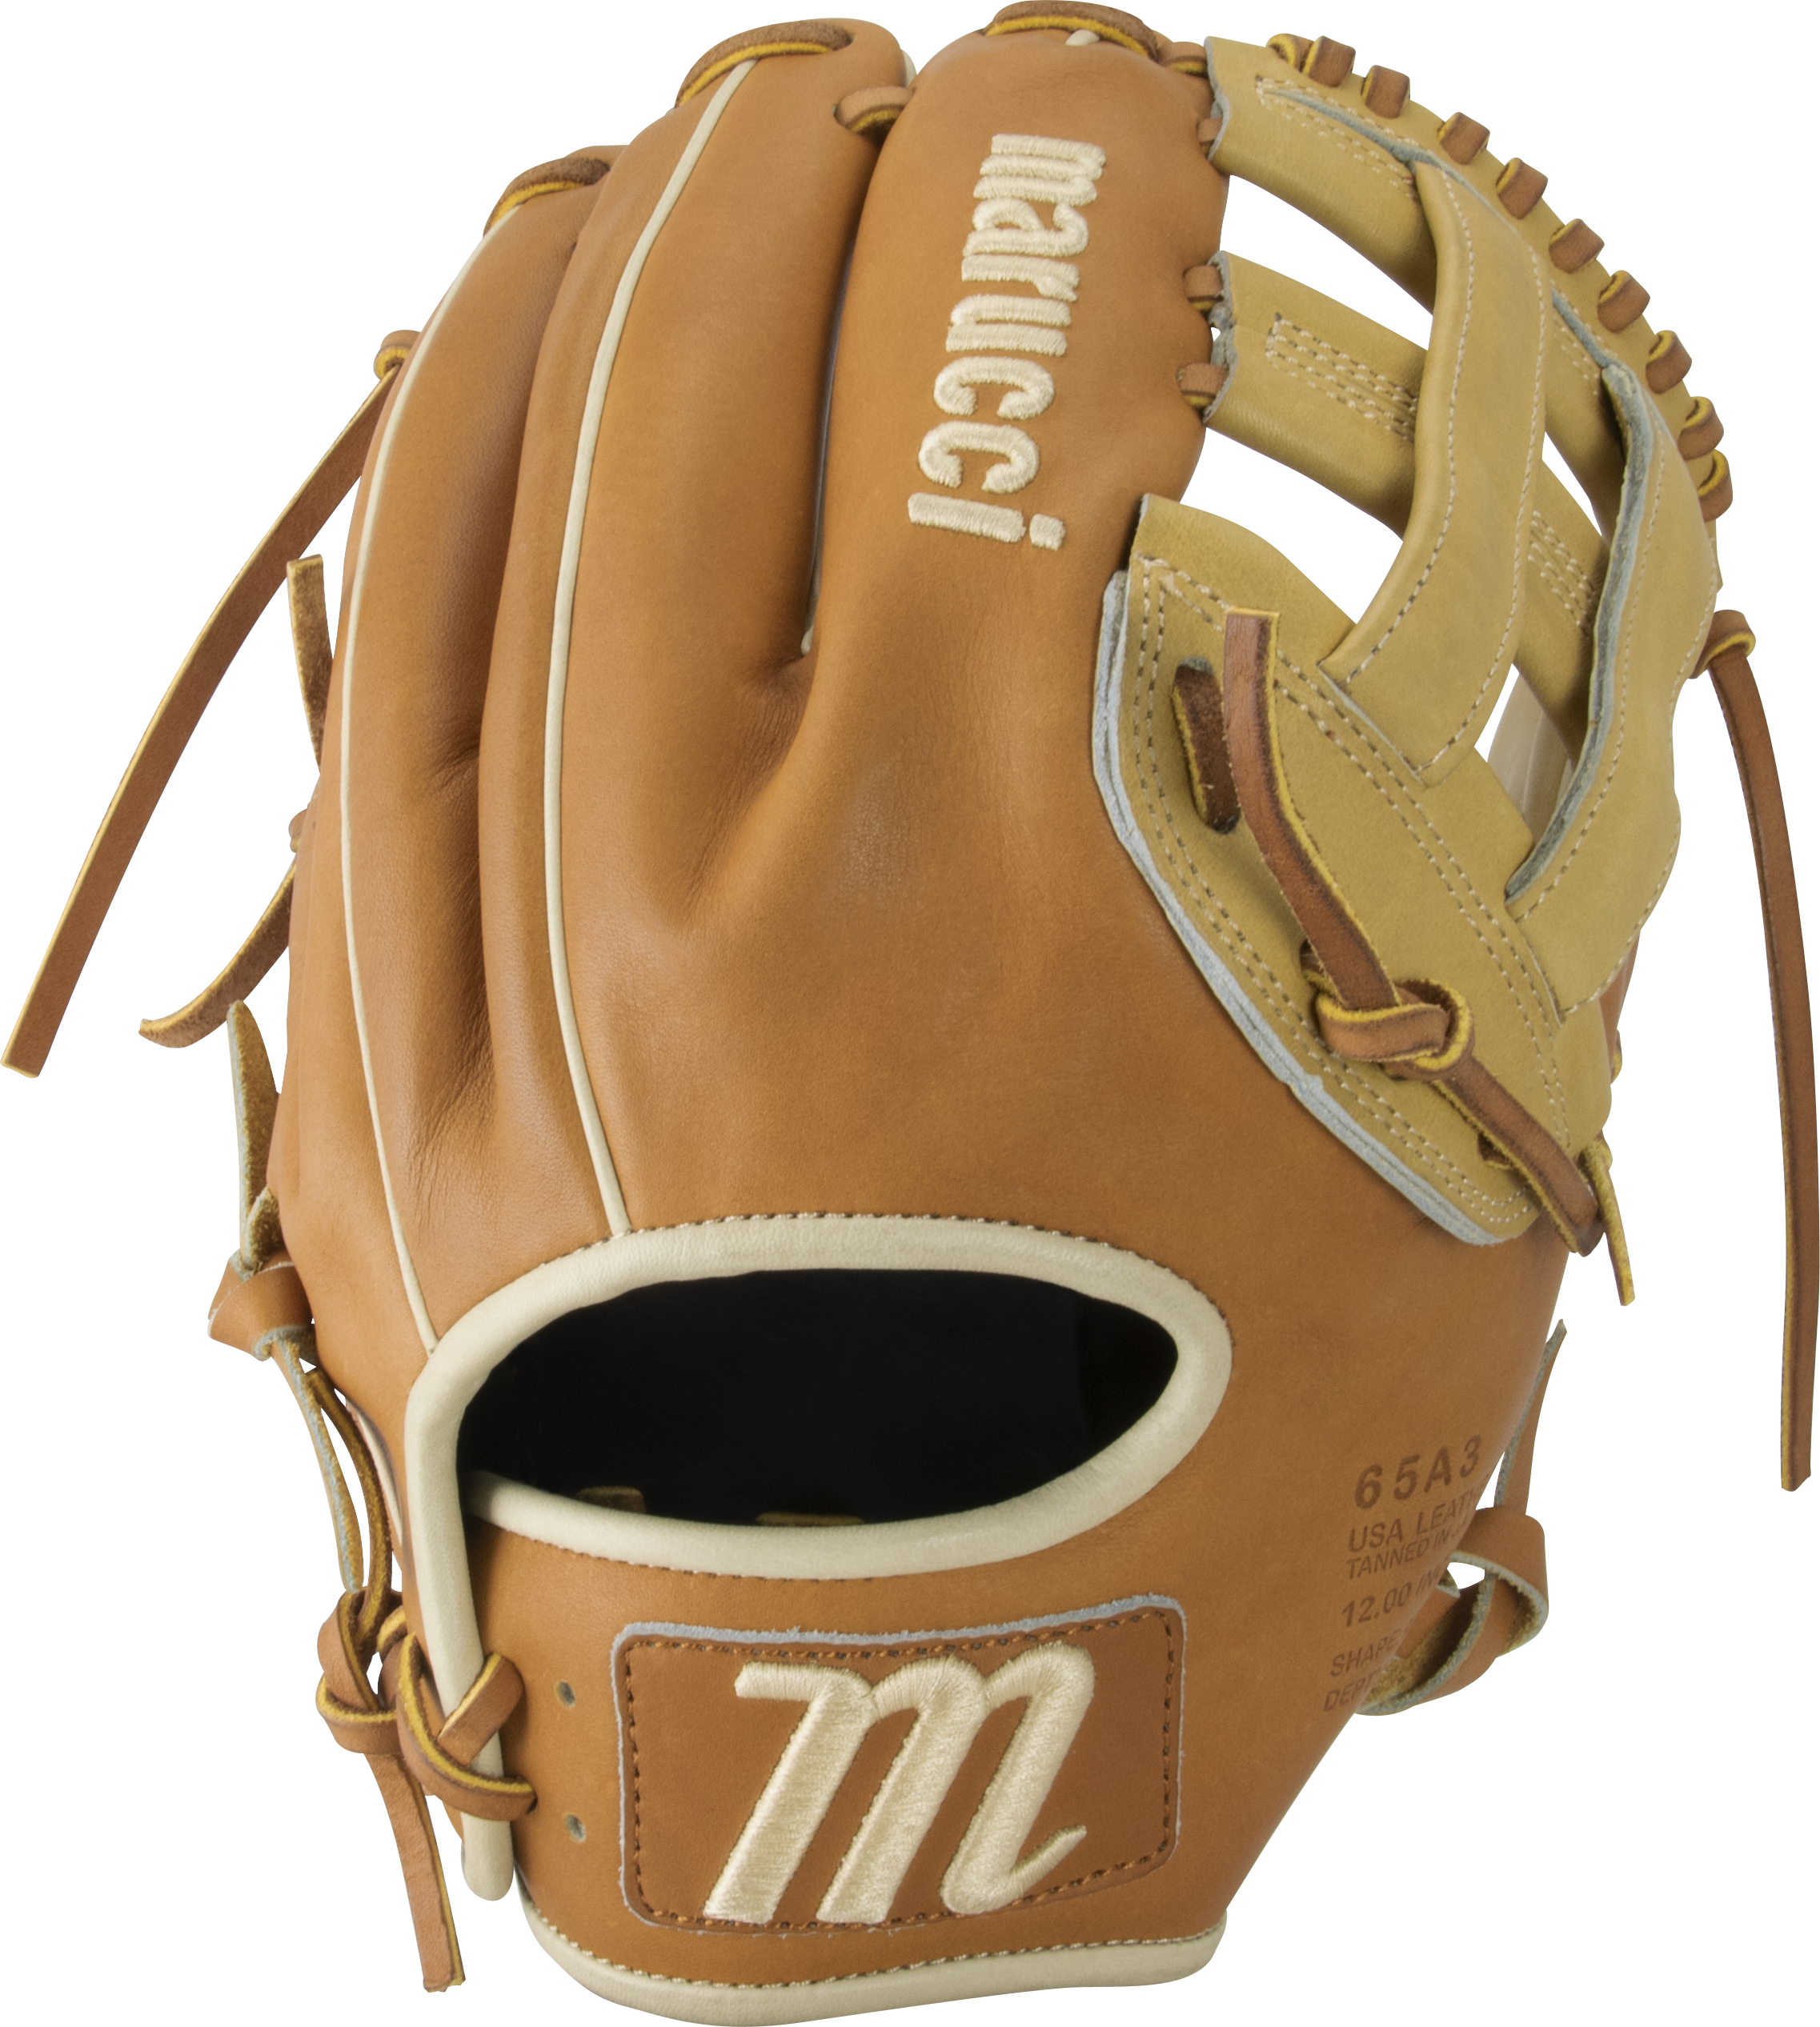 marucci-cypress-12-baseball-glove-65a3-12-h-web-right-hand-throw MFGCY65A3-SMTF-RightHandThrow Marucci  849817099384  • Premium Japanese-tanned steerhide leather provides stiffness and rugged durability •